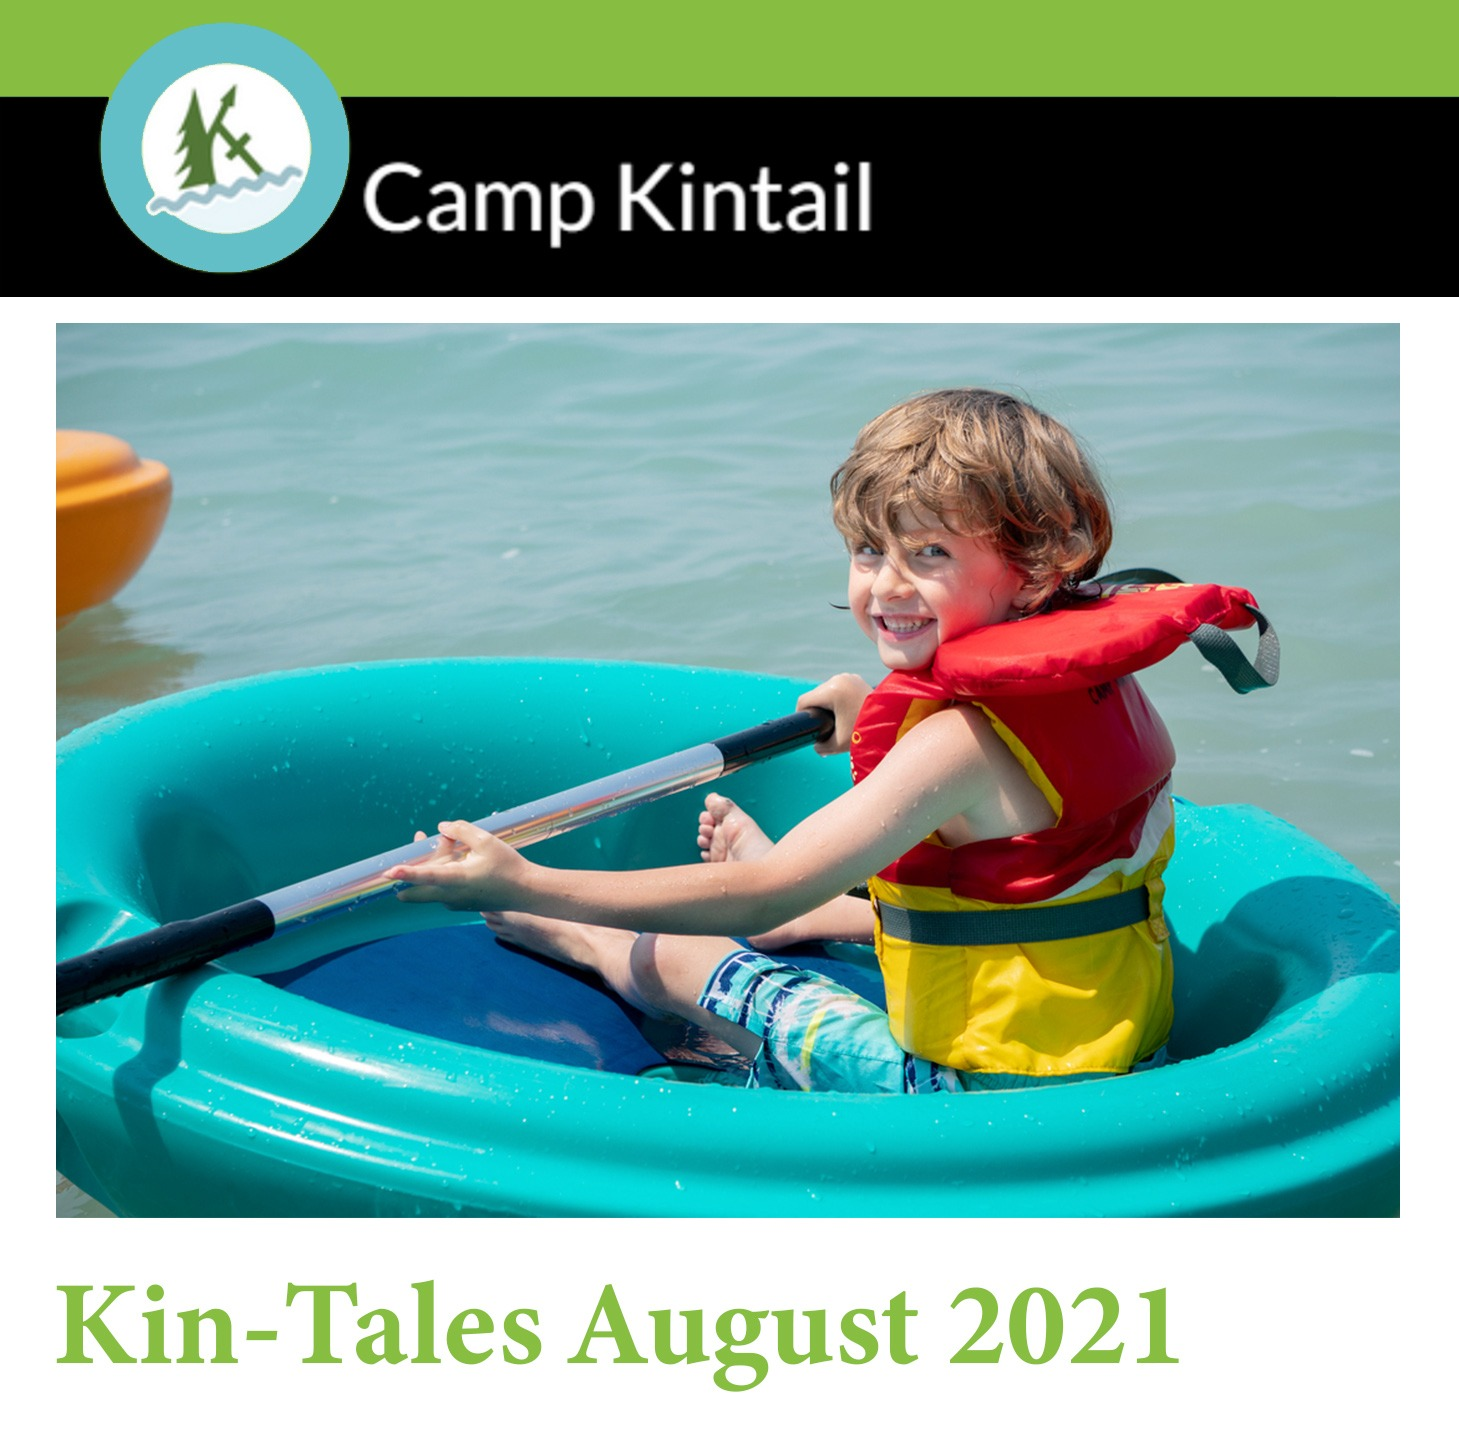 Title Text: Kin-Tales August 2021. Image: A child in a lifejacket smiles in a corcl.